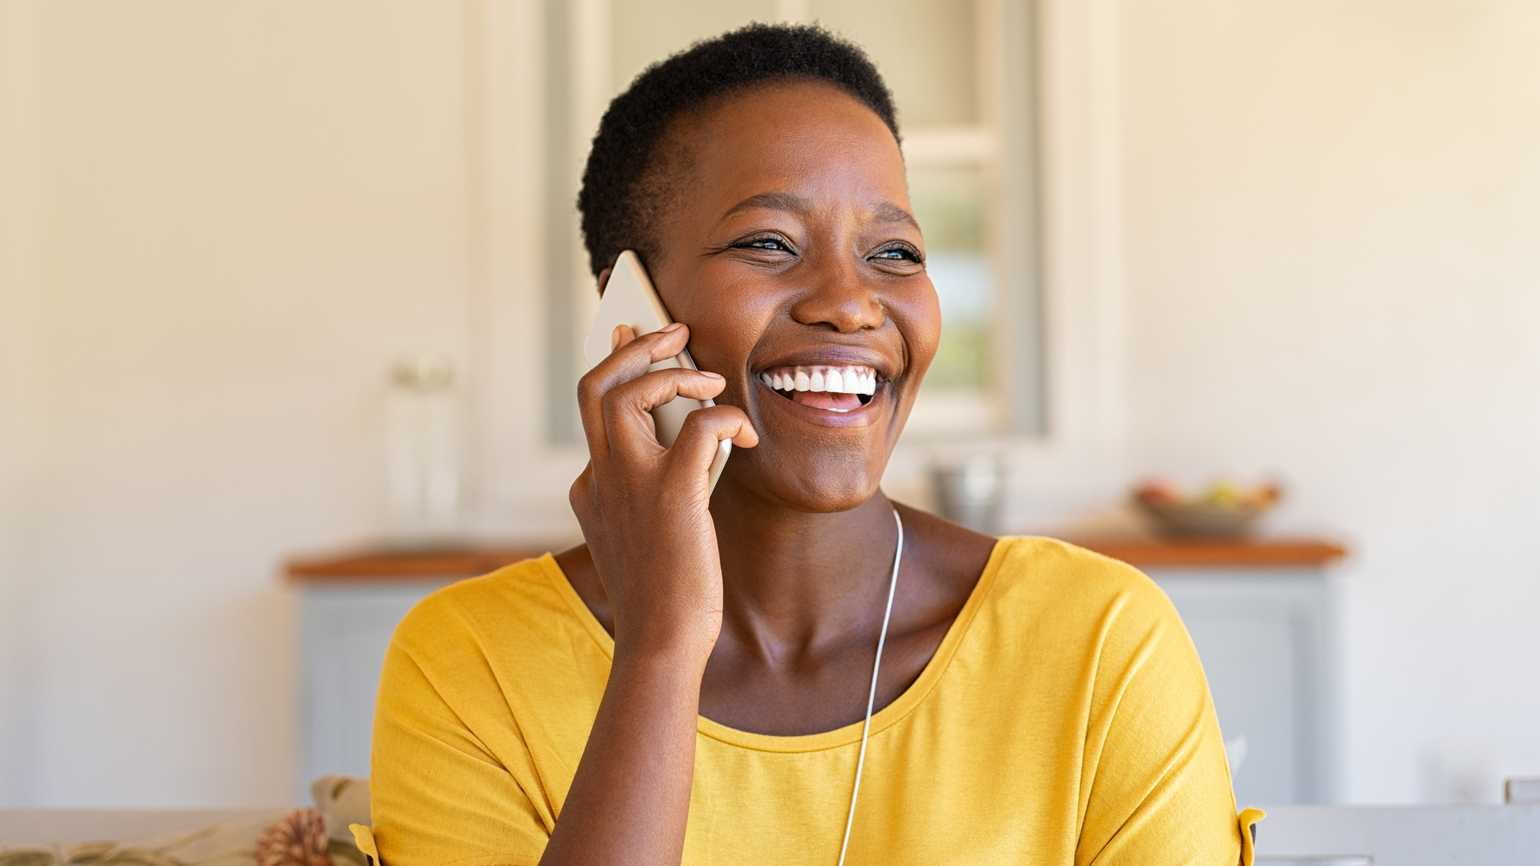 A woman happily talking on the phone.